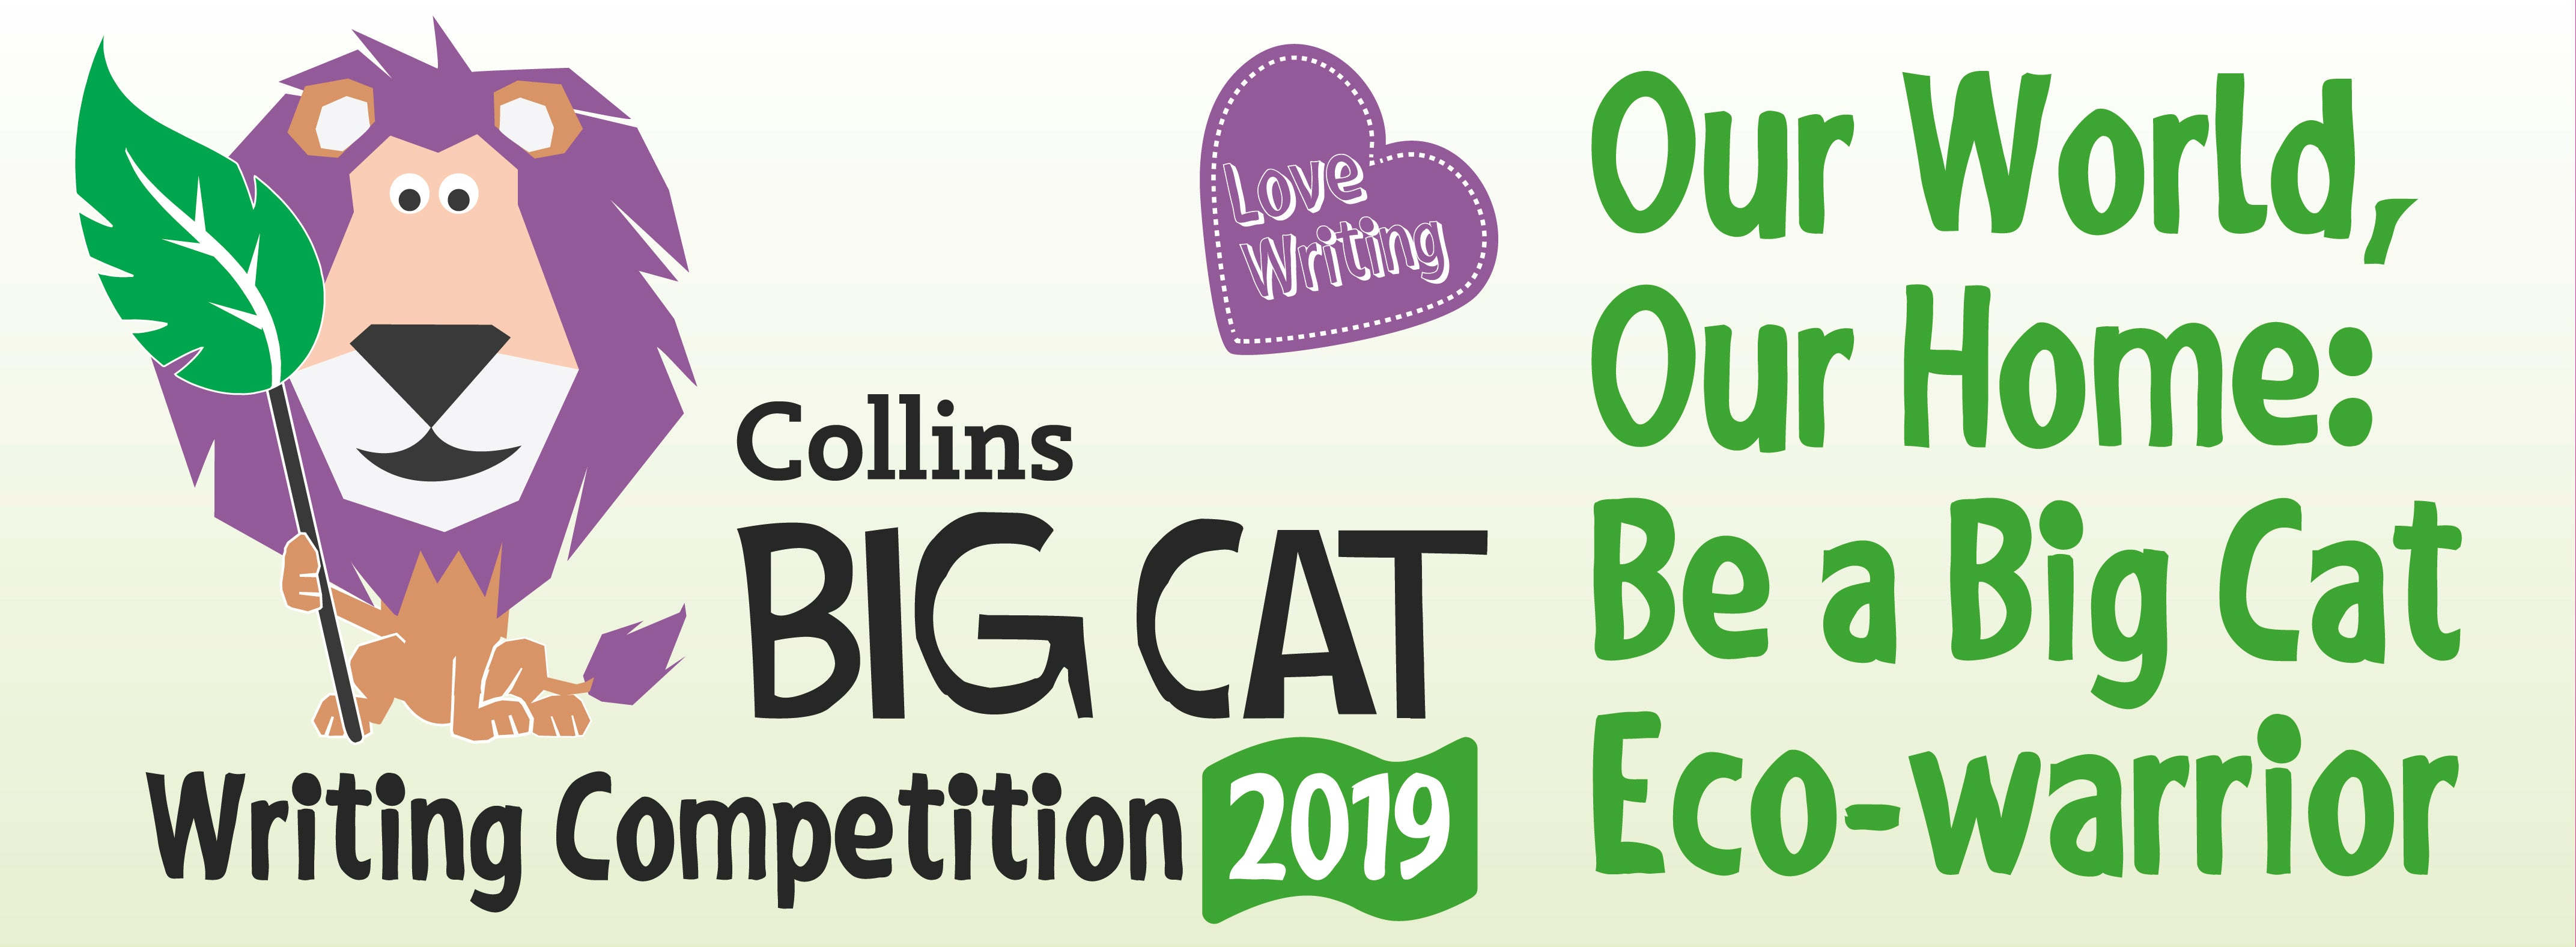 Click here to find out more about the Collins Big Cat Writing Competition 2019!